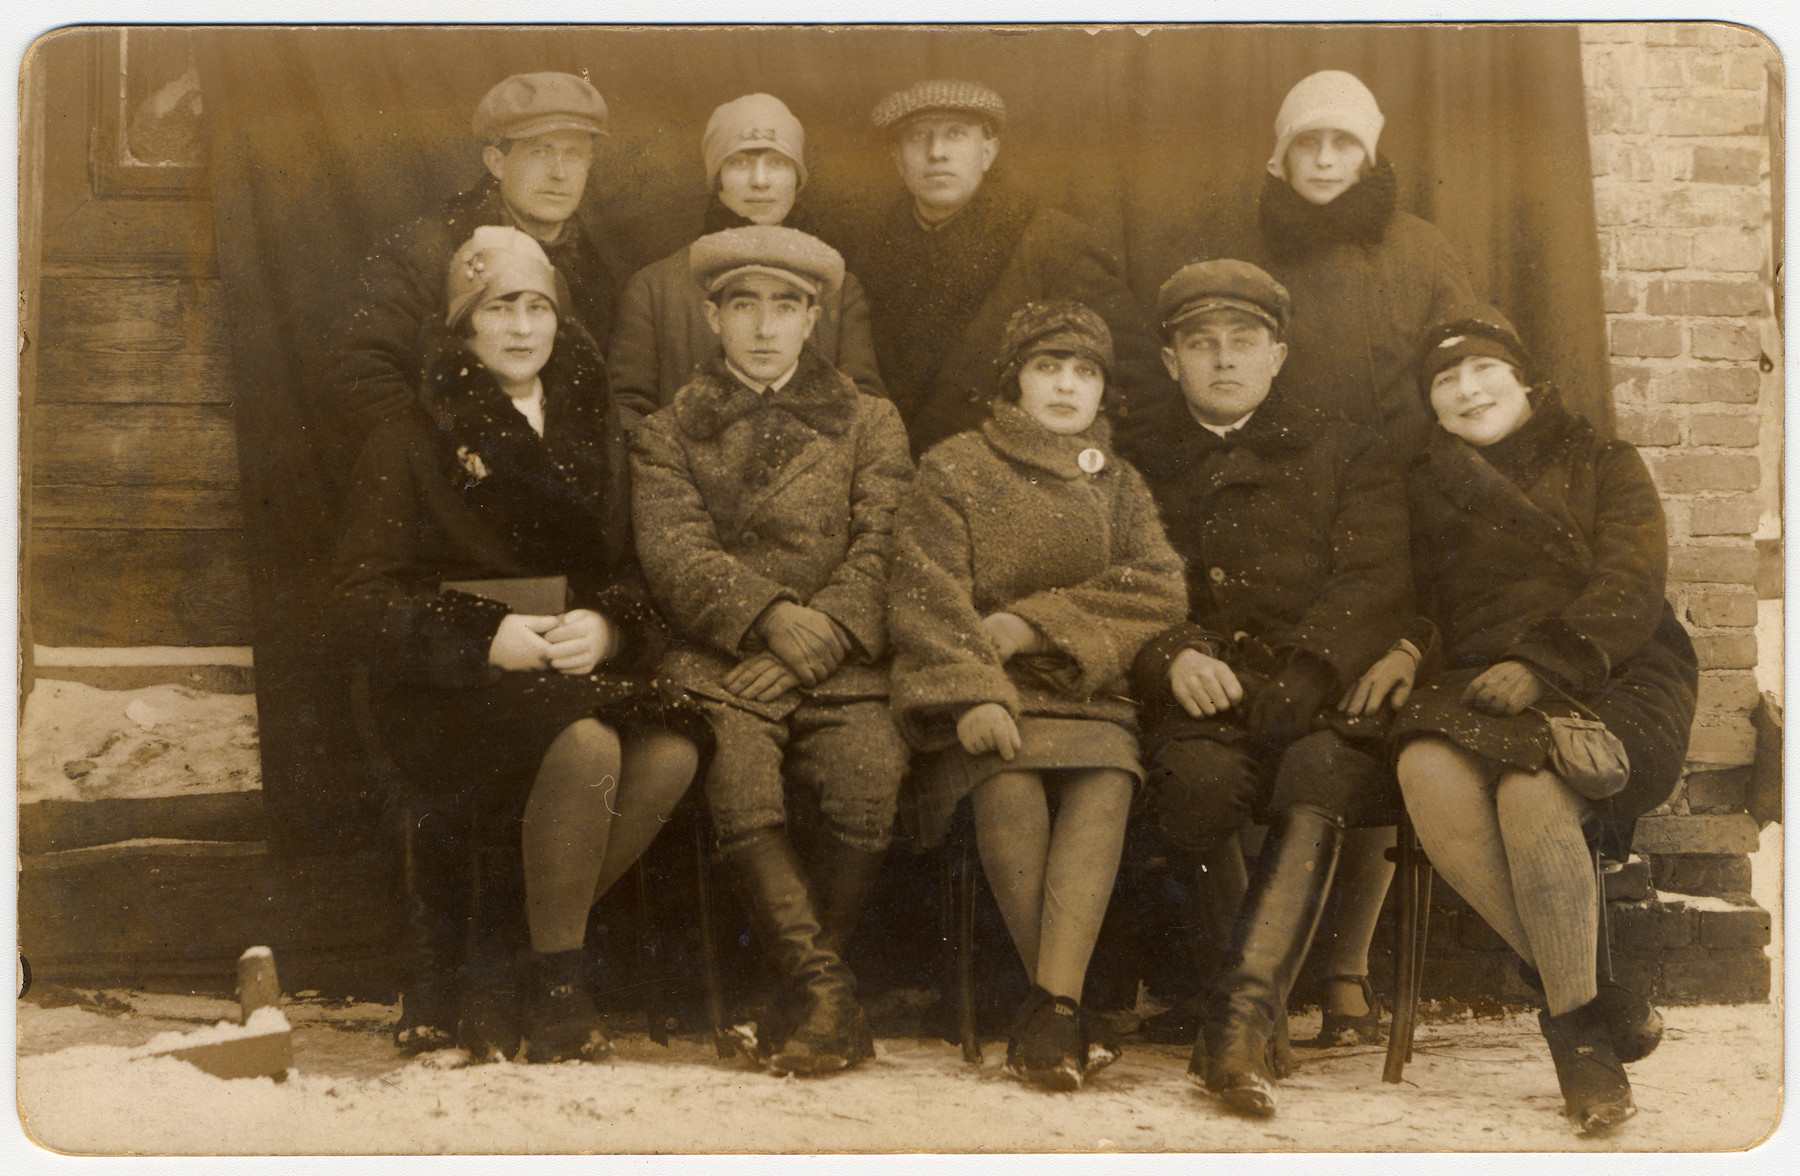 Group portrait of young Jewish adults (many of them cousins of the donor's father) in Zelva.  Among those pictured are Yussel Freidin (standing center), Feigel Moorstein (seated left), Esther Moorstein (wife of Yussel Freidin, seated right) and Sarah Bereshkovsky (standing second from the left).